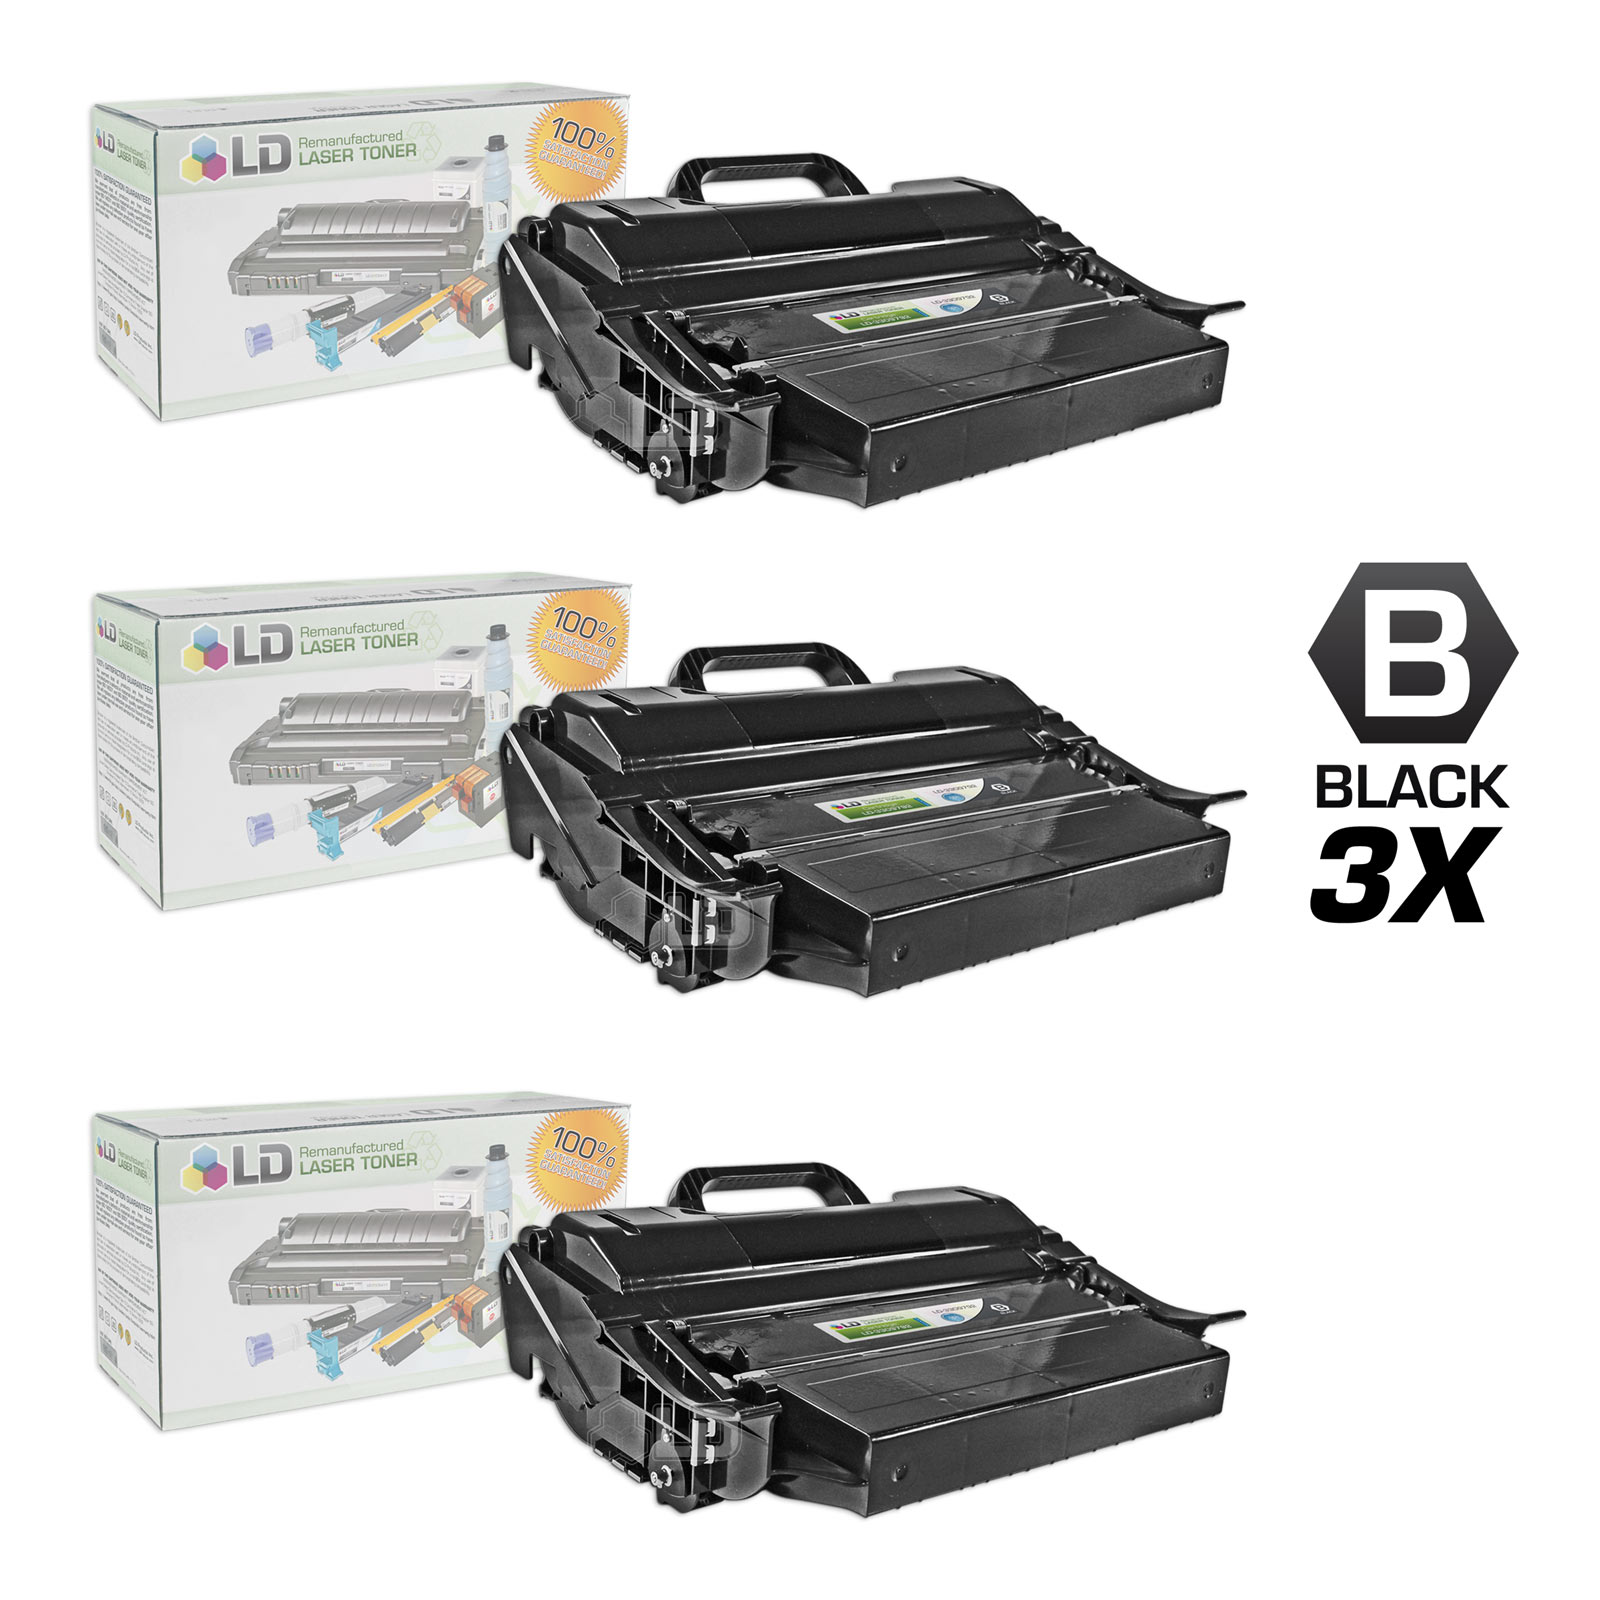 LD Compatible Dell 330-9792 (PK6Y4) Extra High Yield Black Toner Cartridges for Dell 5530dn/5535dn Printers